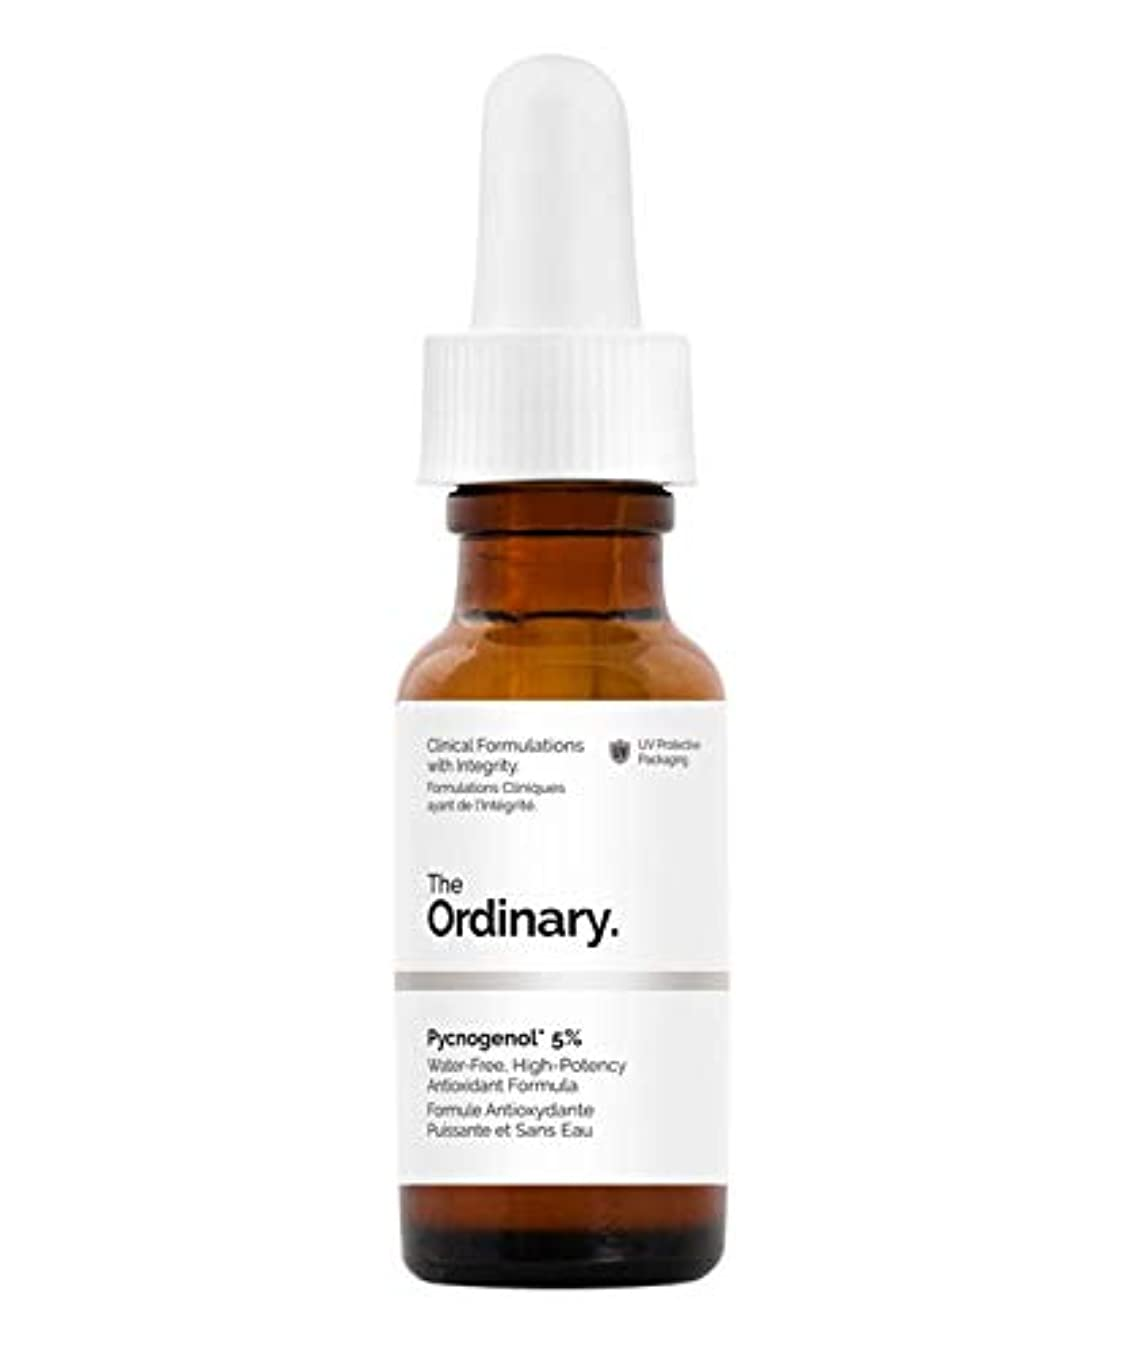 快い重要三角形The Ordinary Pycnogenol 5% 15ml